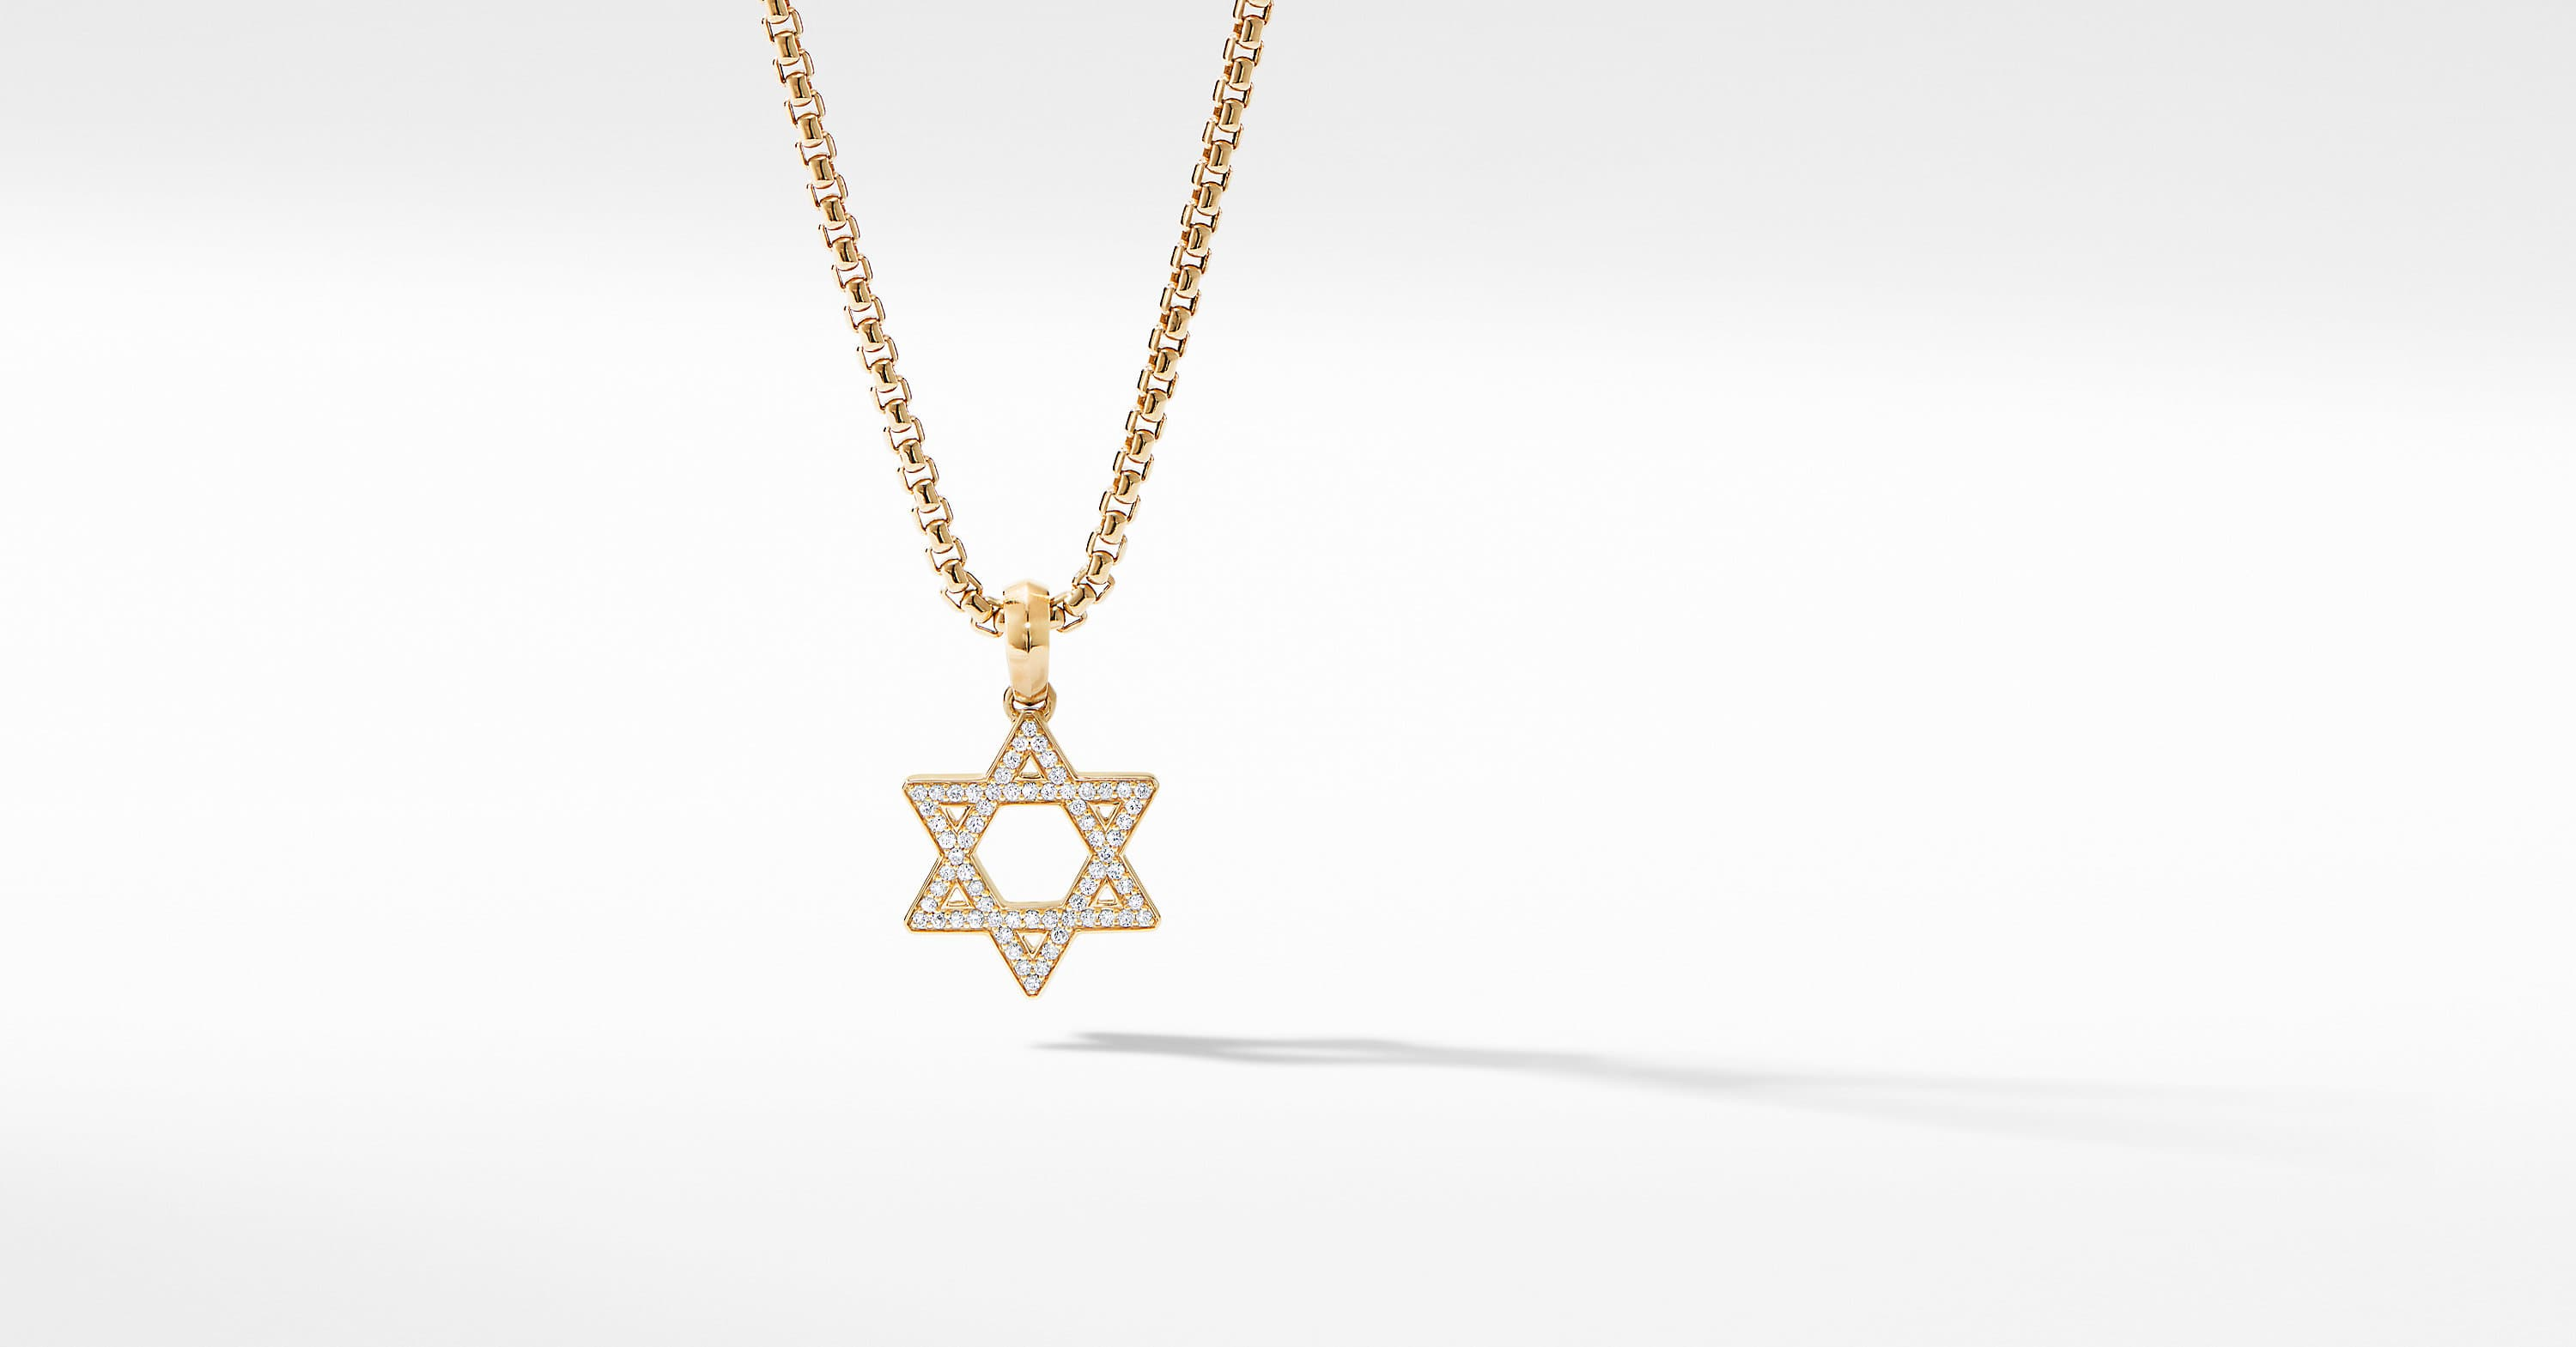 Modern Renaissance Star of David Pendant in 18K Yellow Gold with Diamonds